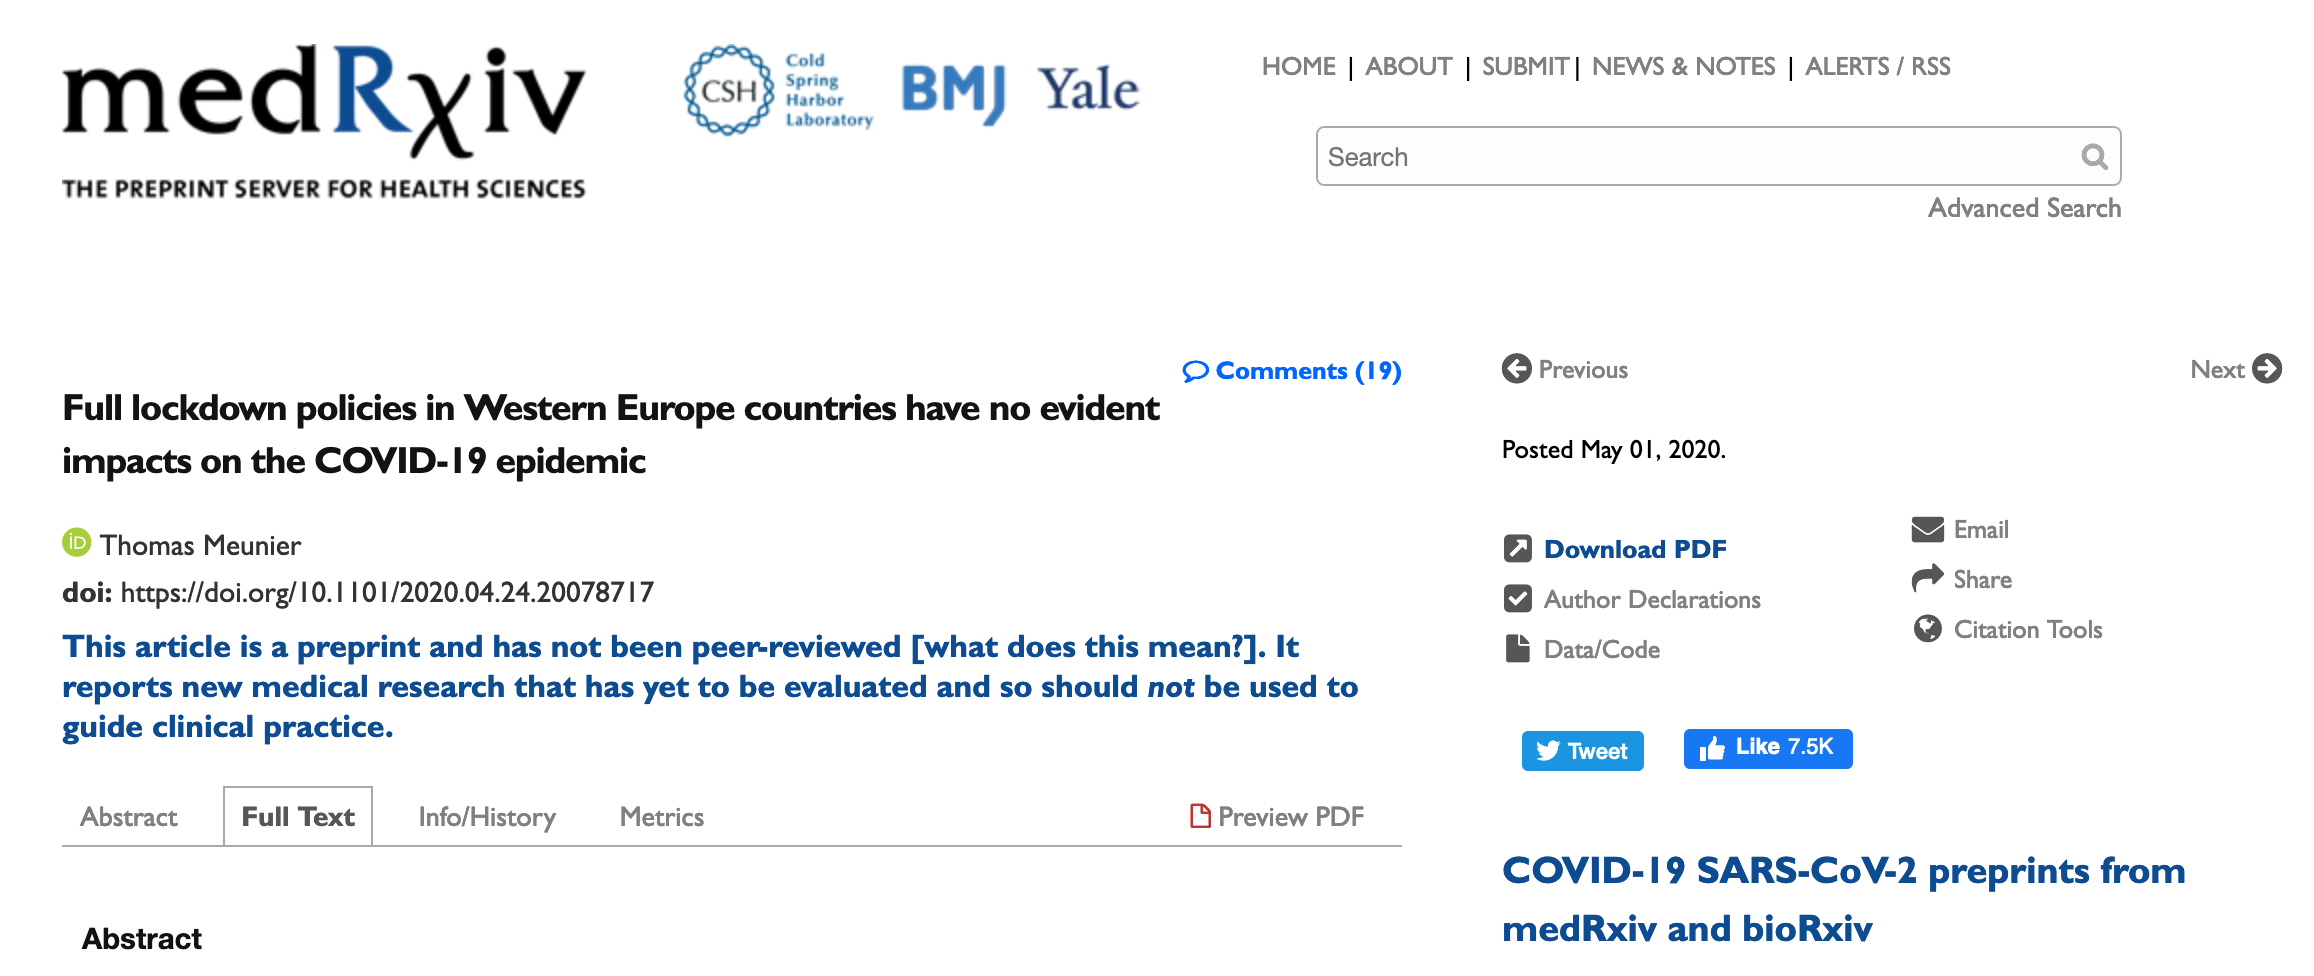 Full lockdown policies in Western Europe countries have no evident impacts on the COVID-19 epidemic